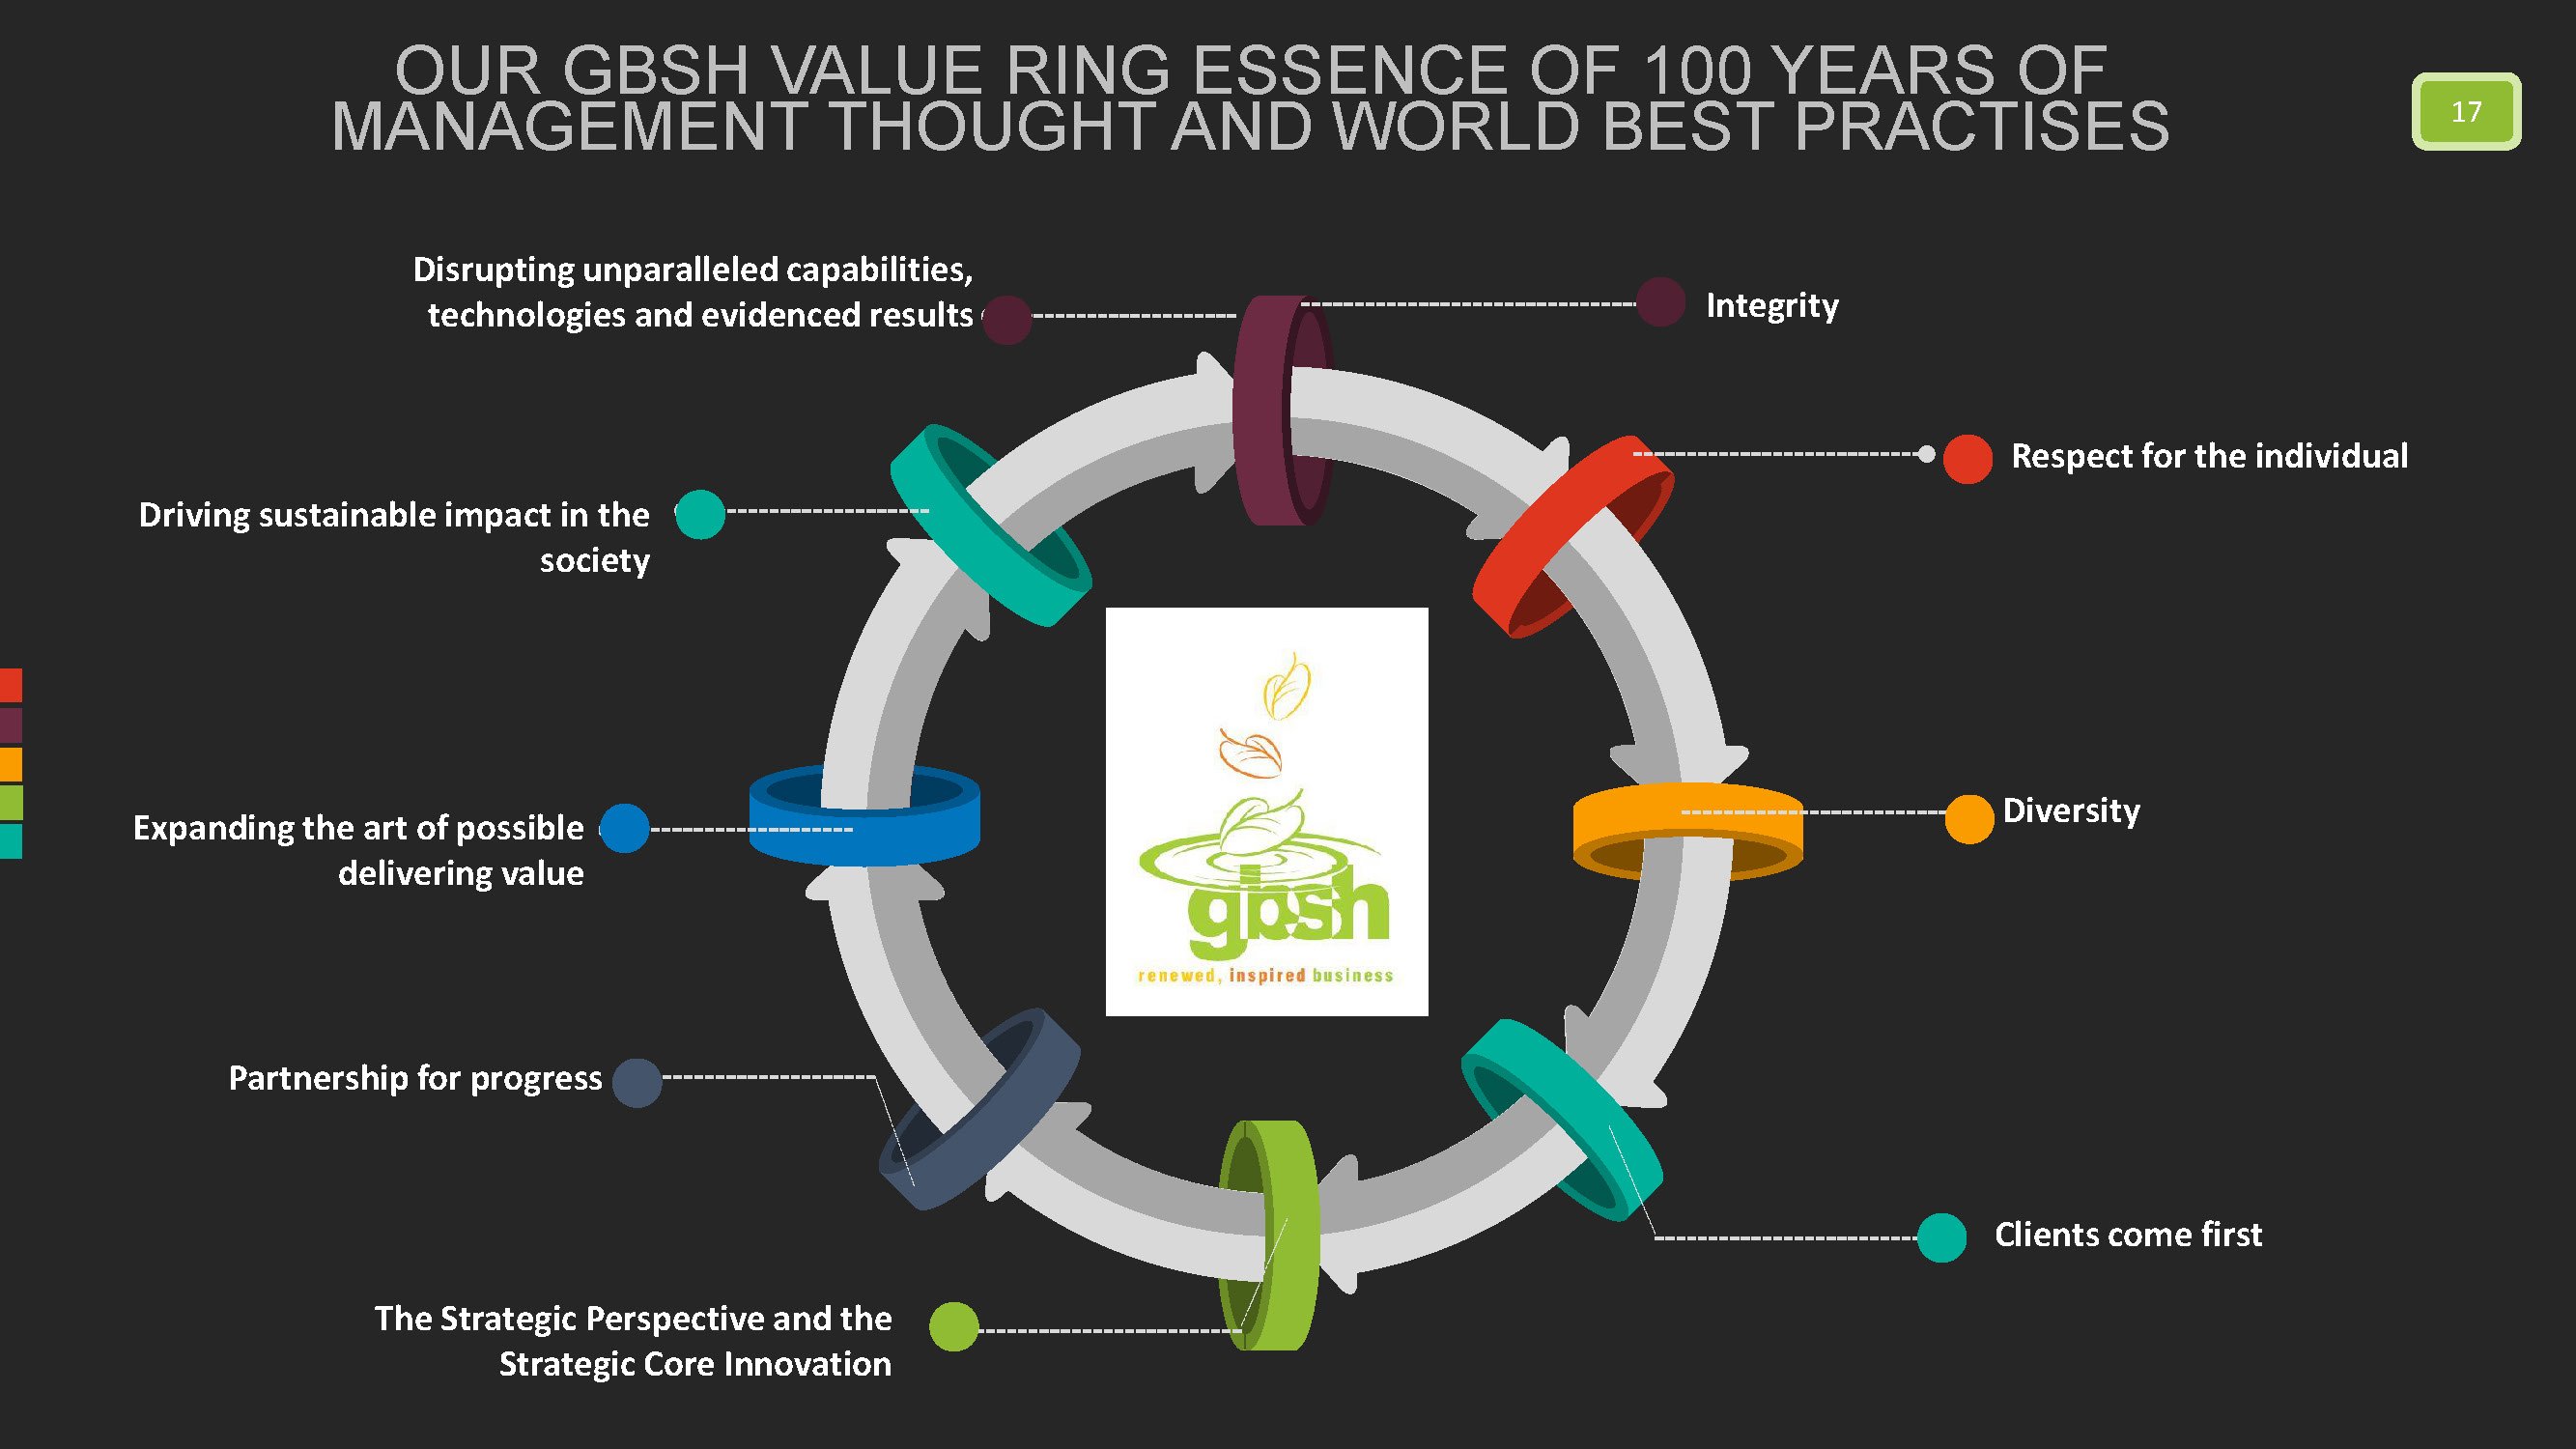 GBSH Consult Group Value Essence Ring